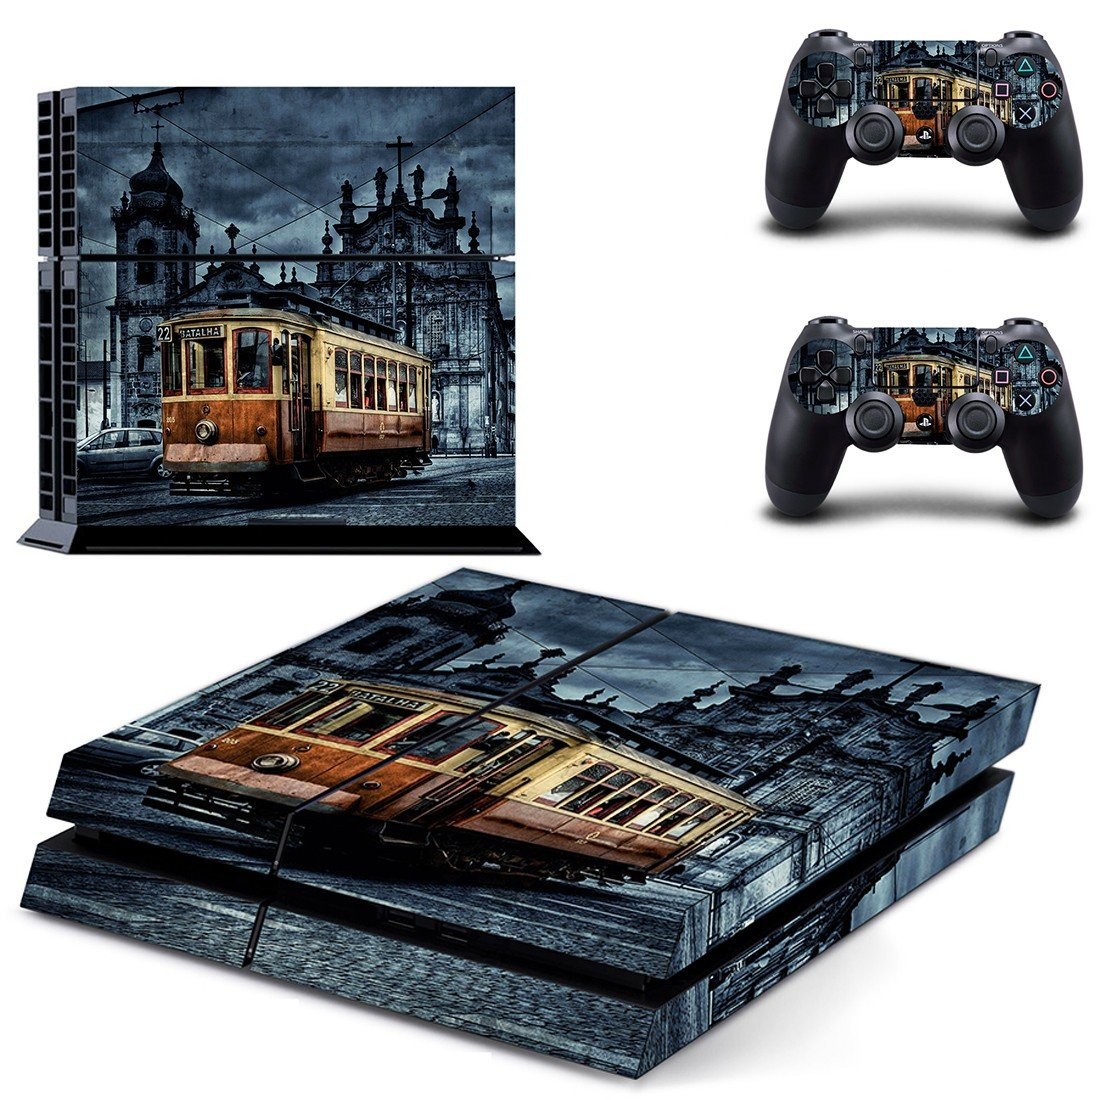 Tram wallpaper skin decal for ps4 console and controllers